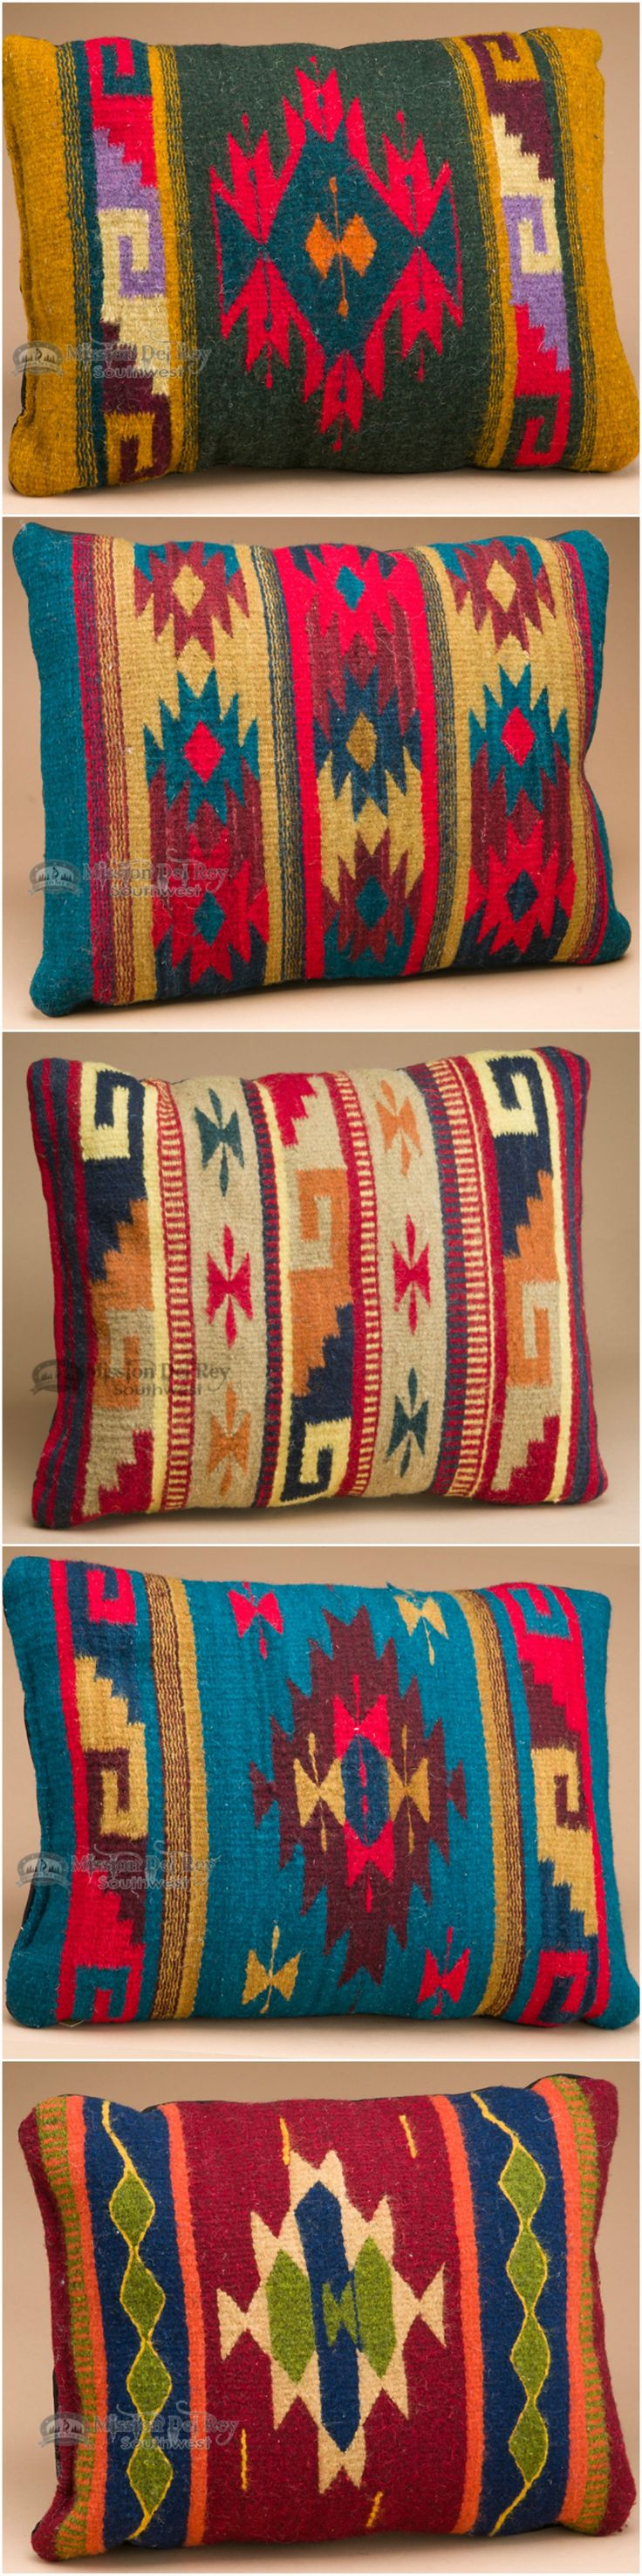 Add the beautiful colors and designs of the Southwest to your home decor with our beautiful southwestern pillows.  Classic Zapotec pillow designs are woven by hand on a loom in the same manner as Native American rugs. See our entire collection of Zapotec southwestern pillows at http://www.missiondelrey.com/southwest-zapotec-pillows-hand-woven/